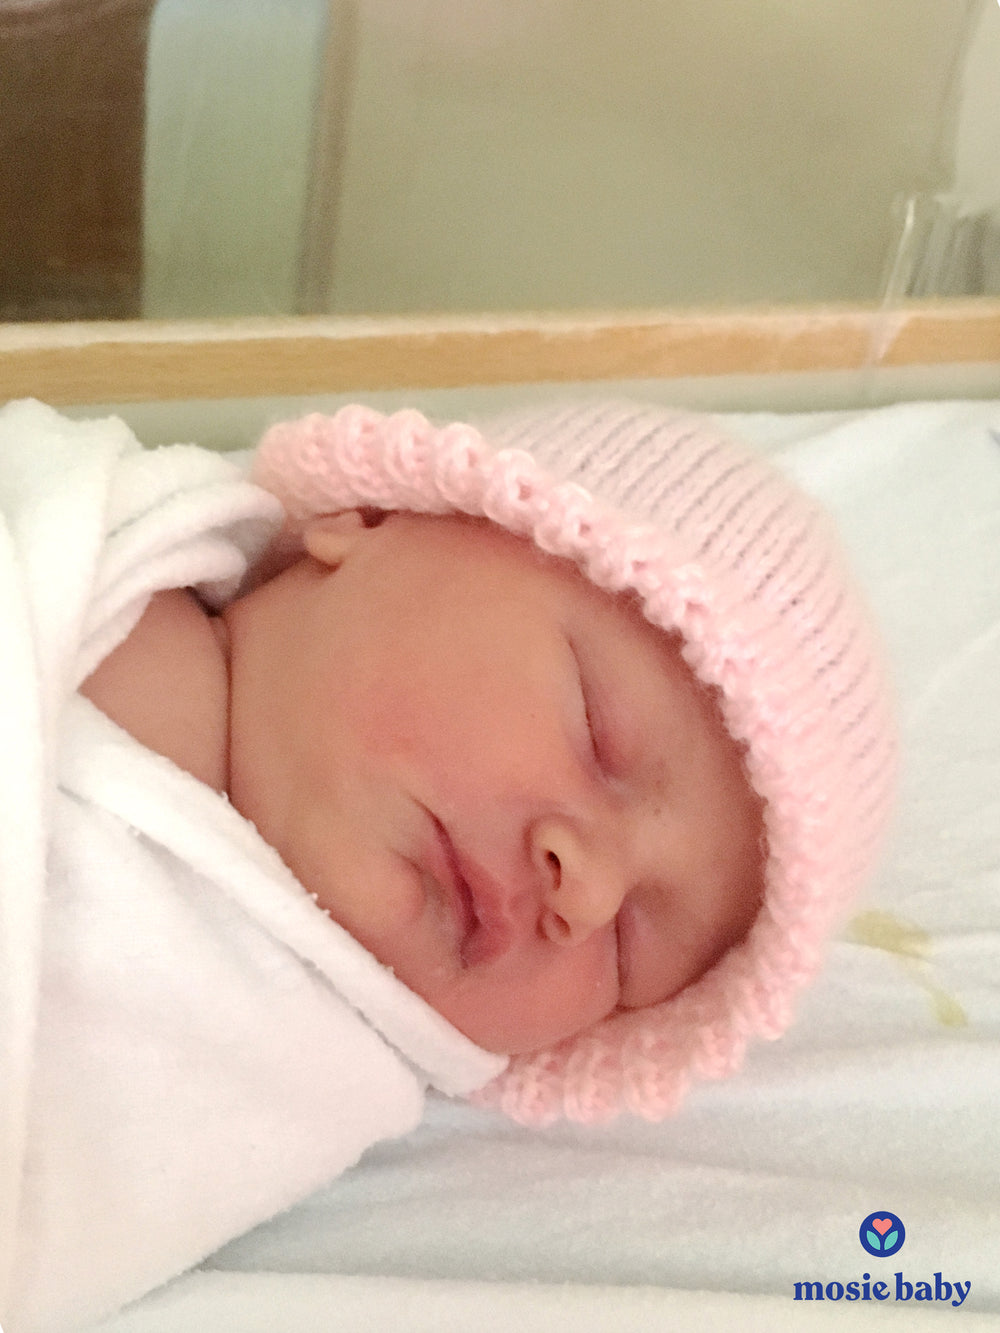 newborn baby with a pink hat